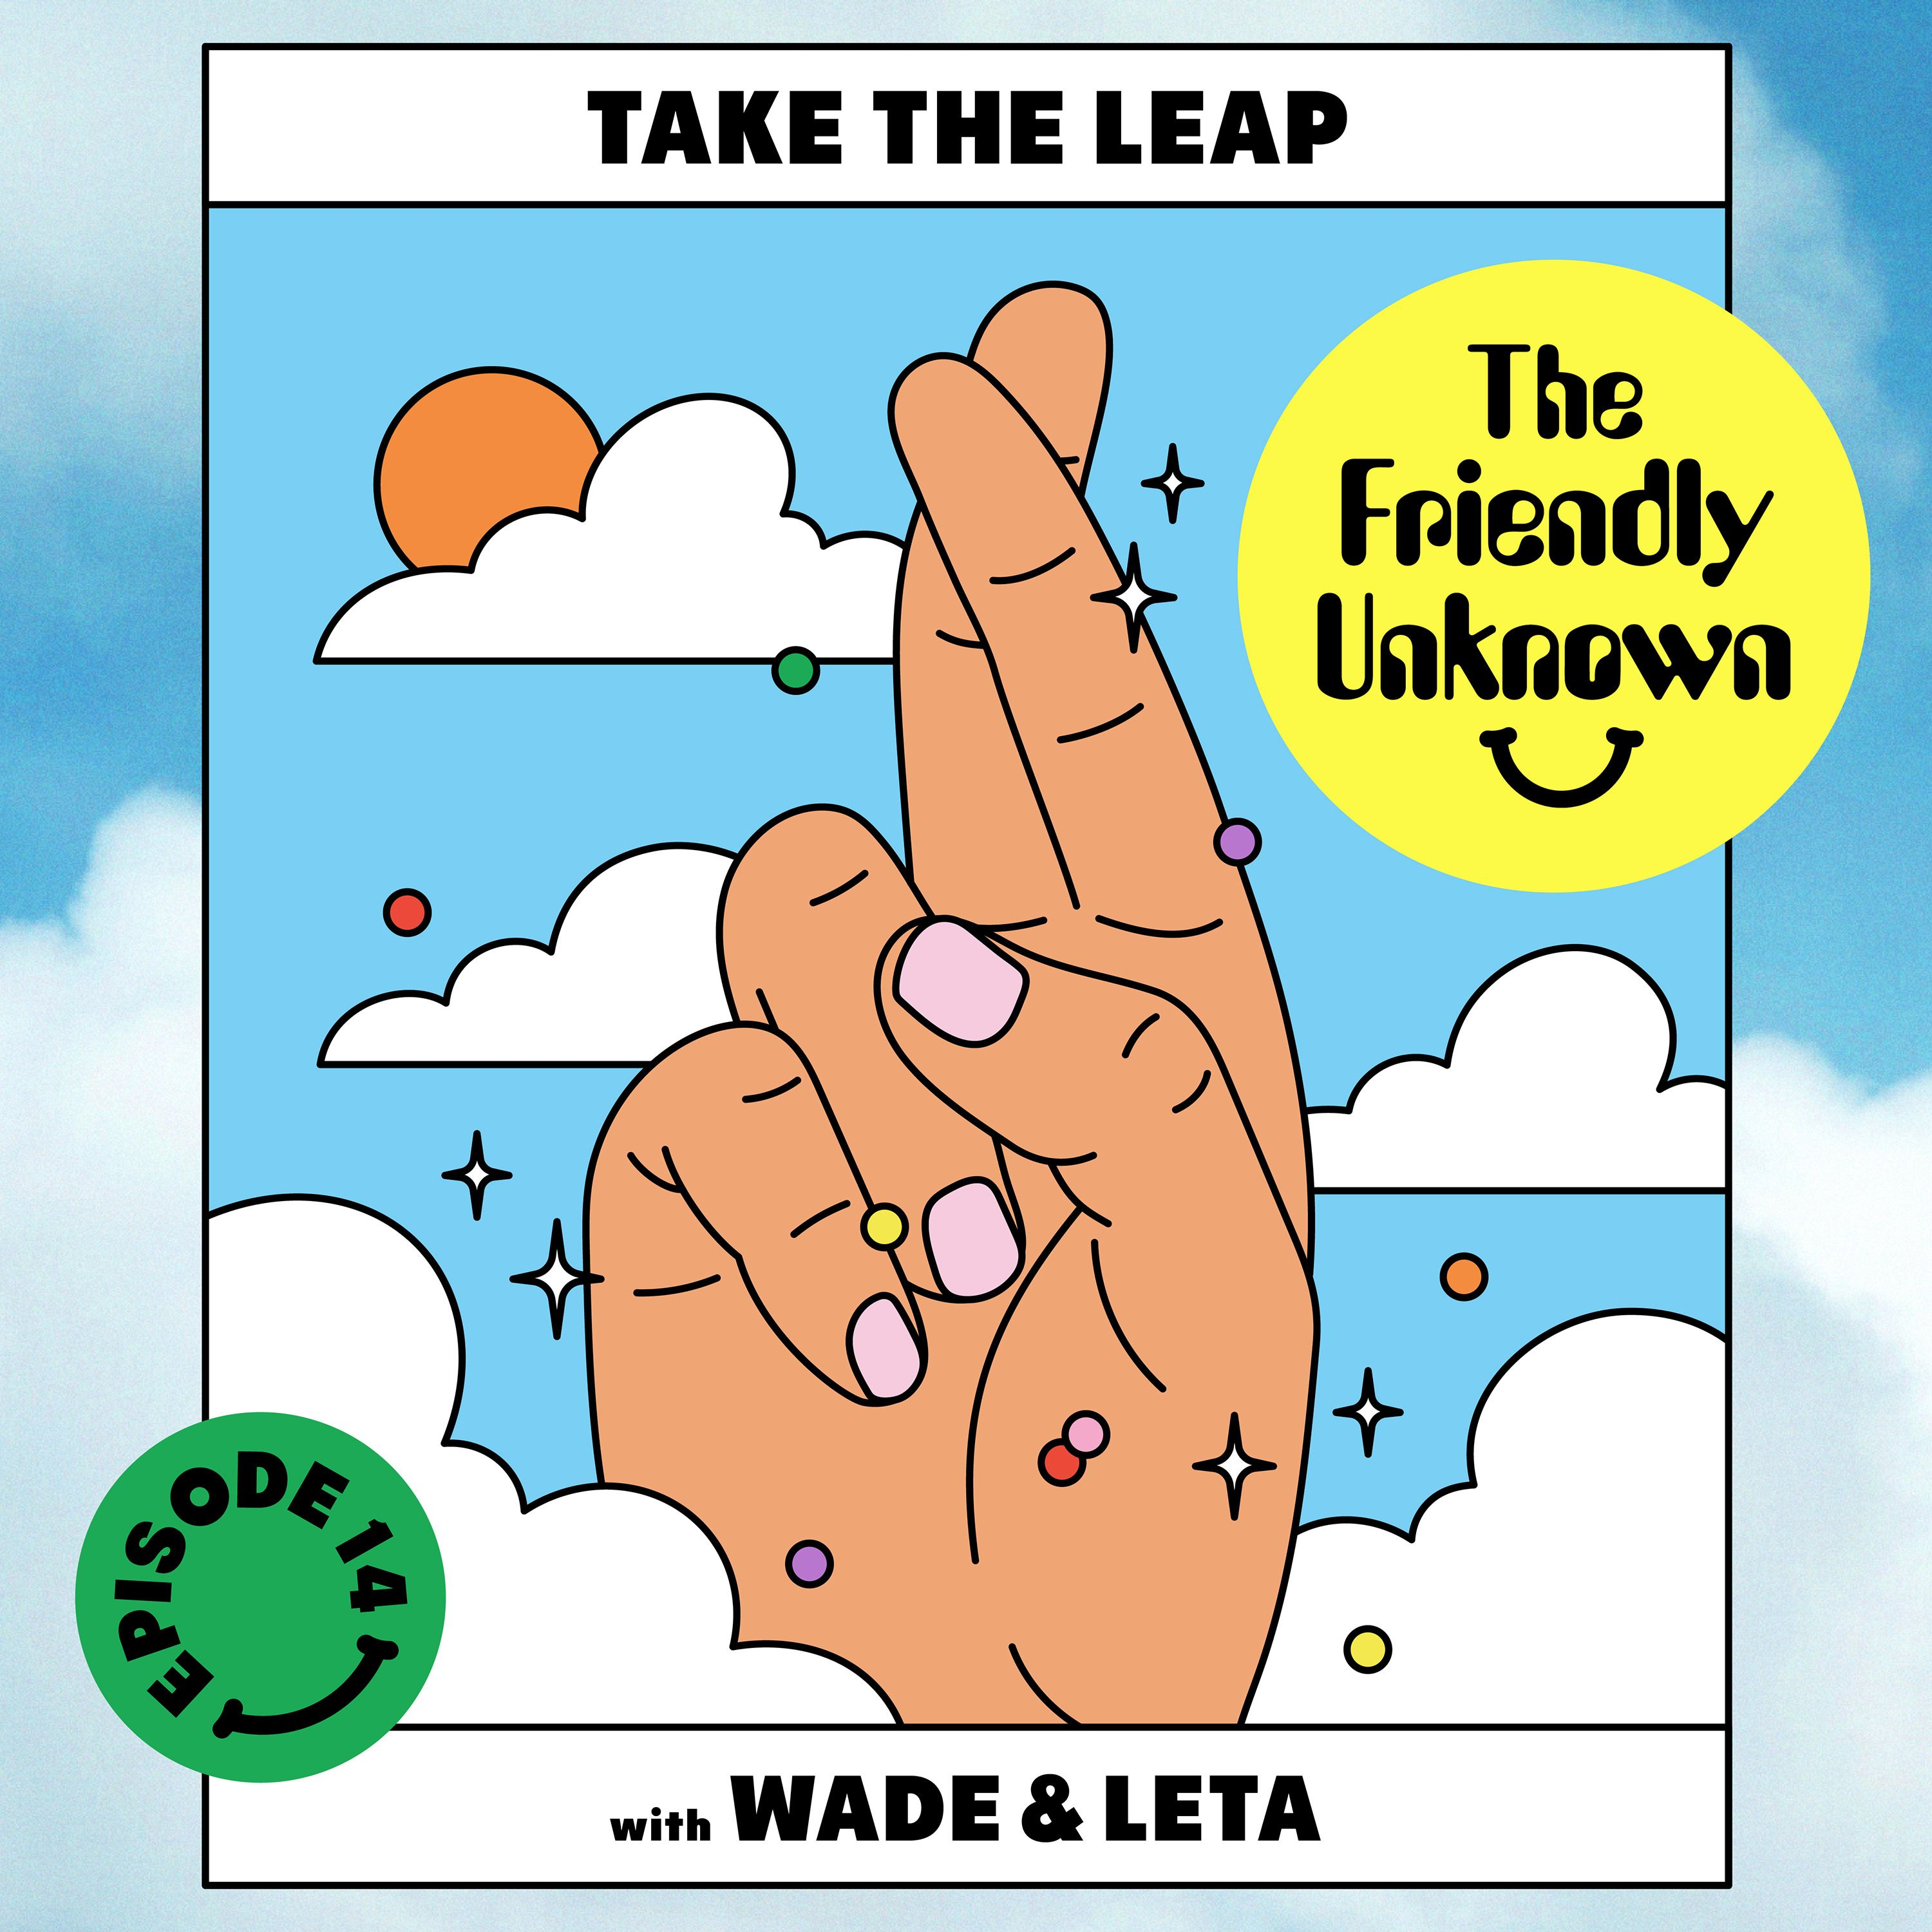 14 - Take the Leap with Wade & Leta